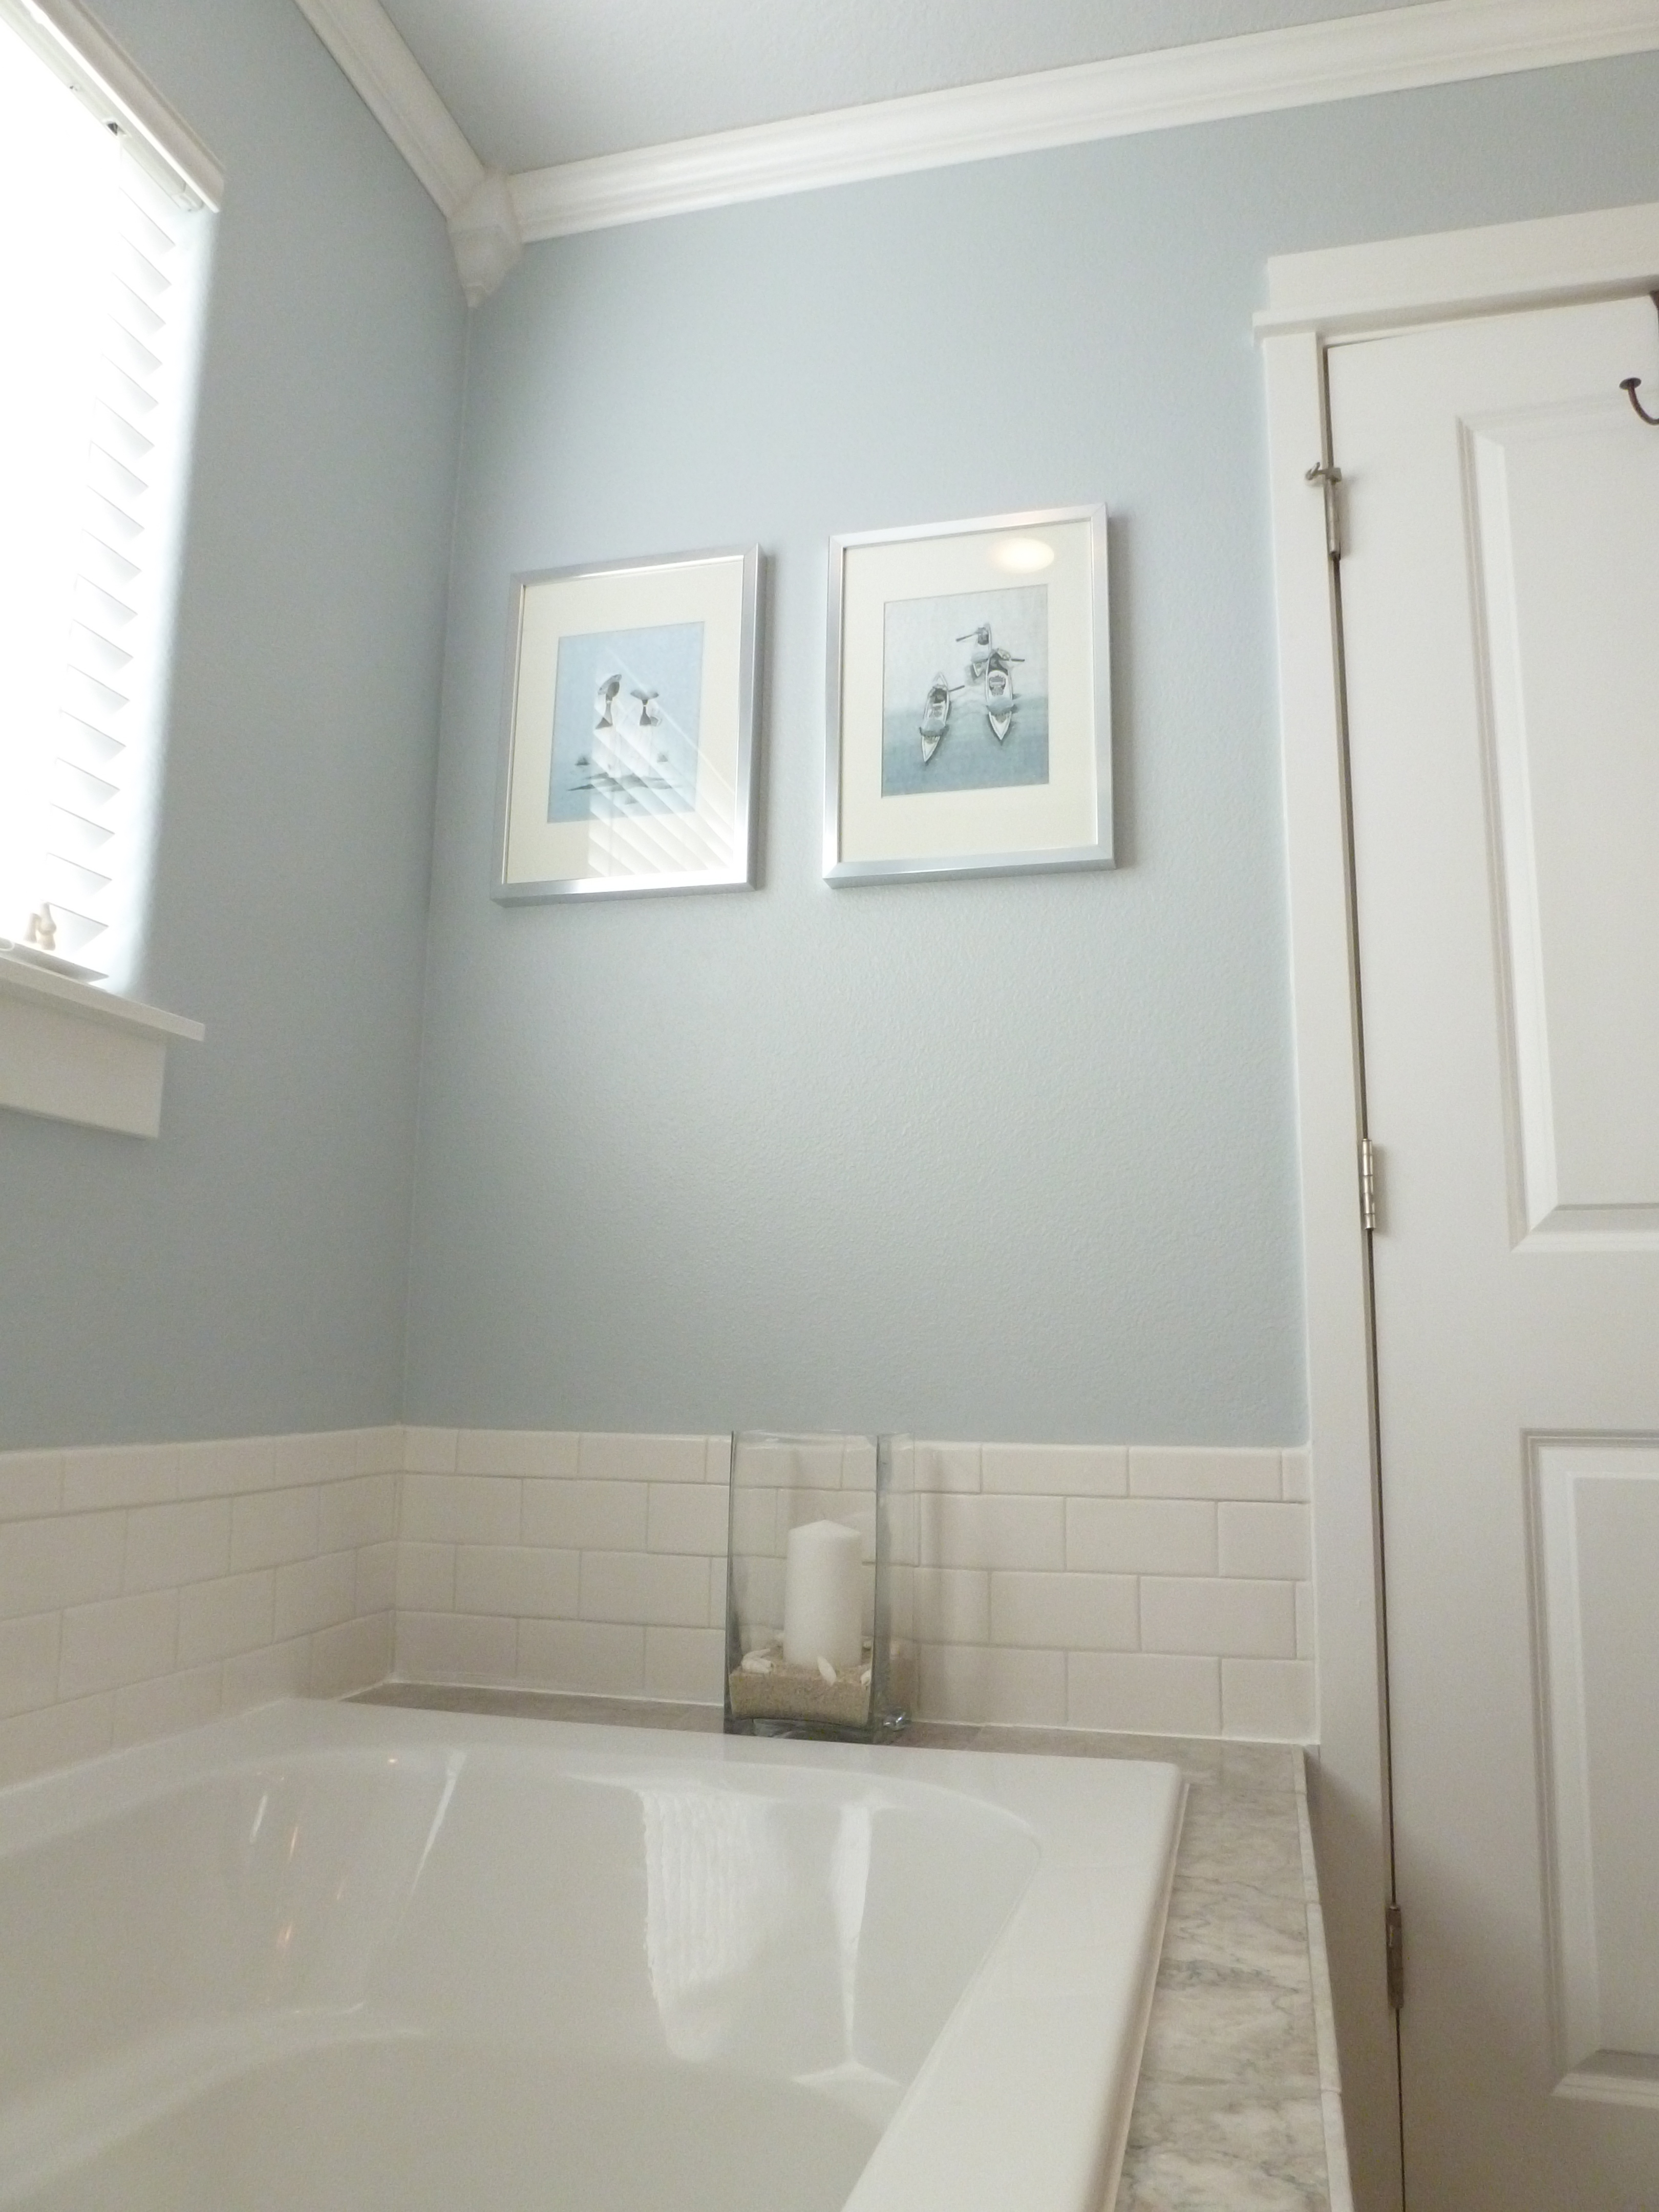 Bathroom paint ideas behr - Displaying 20 Images For Behr Light French Gray